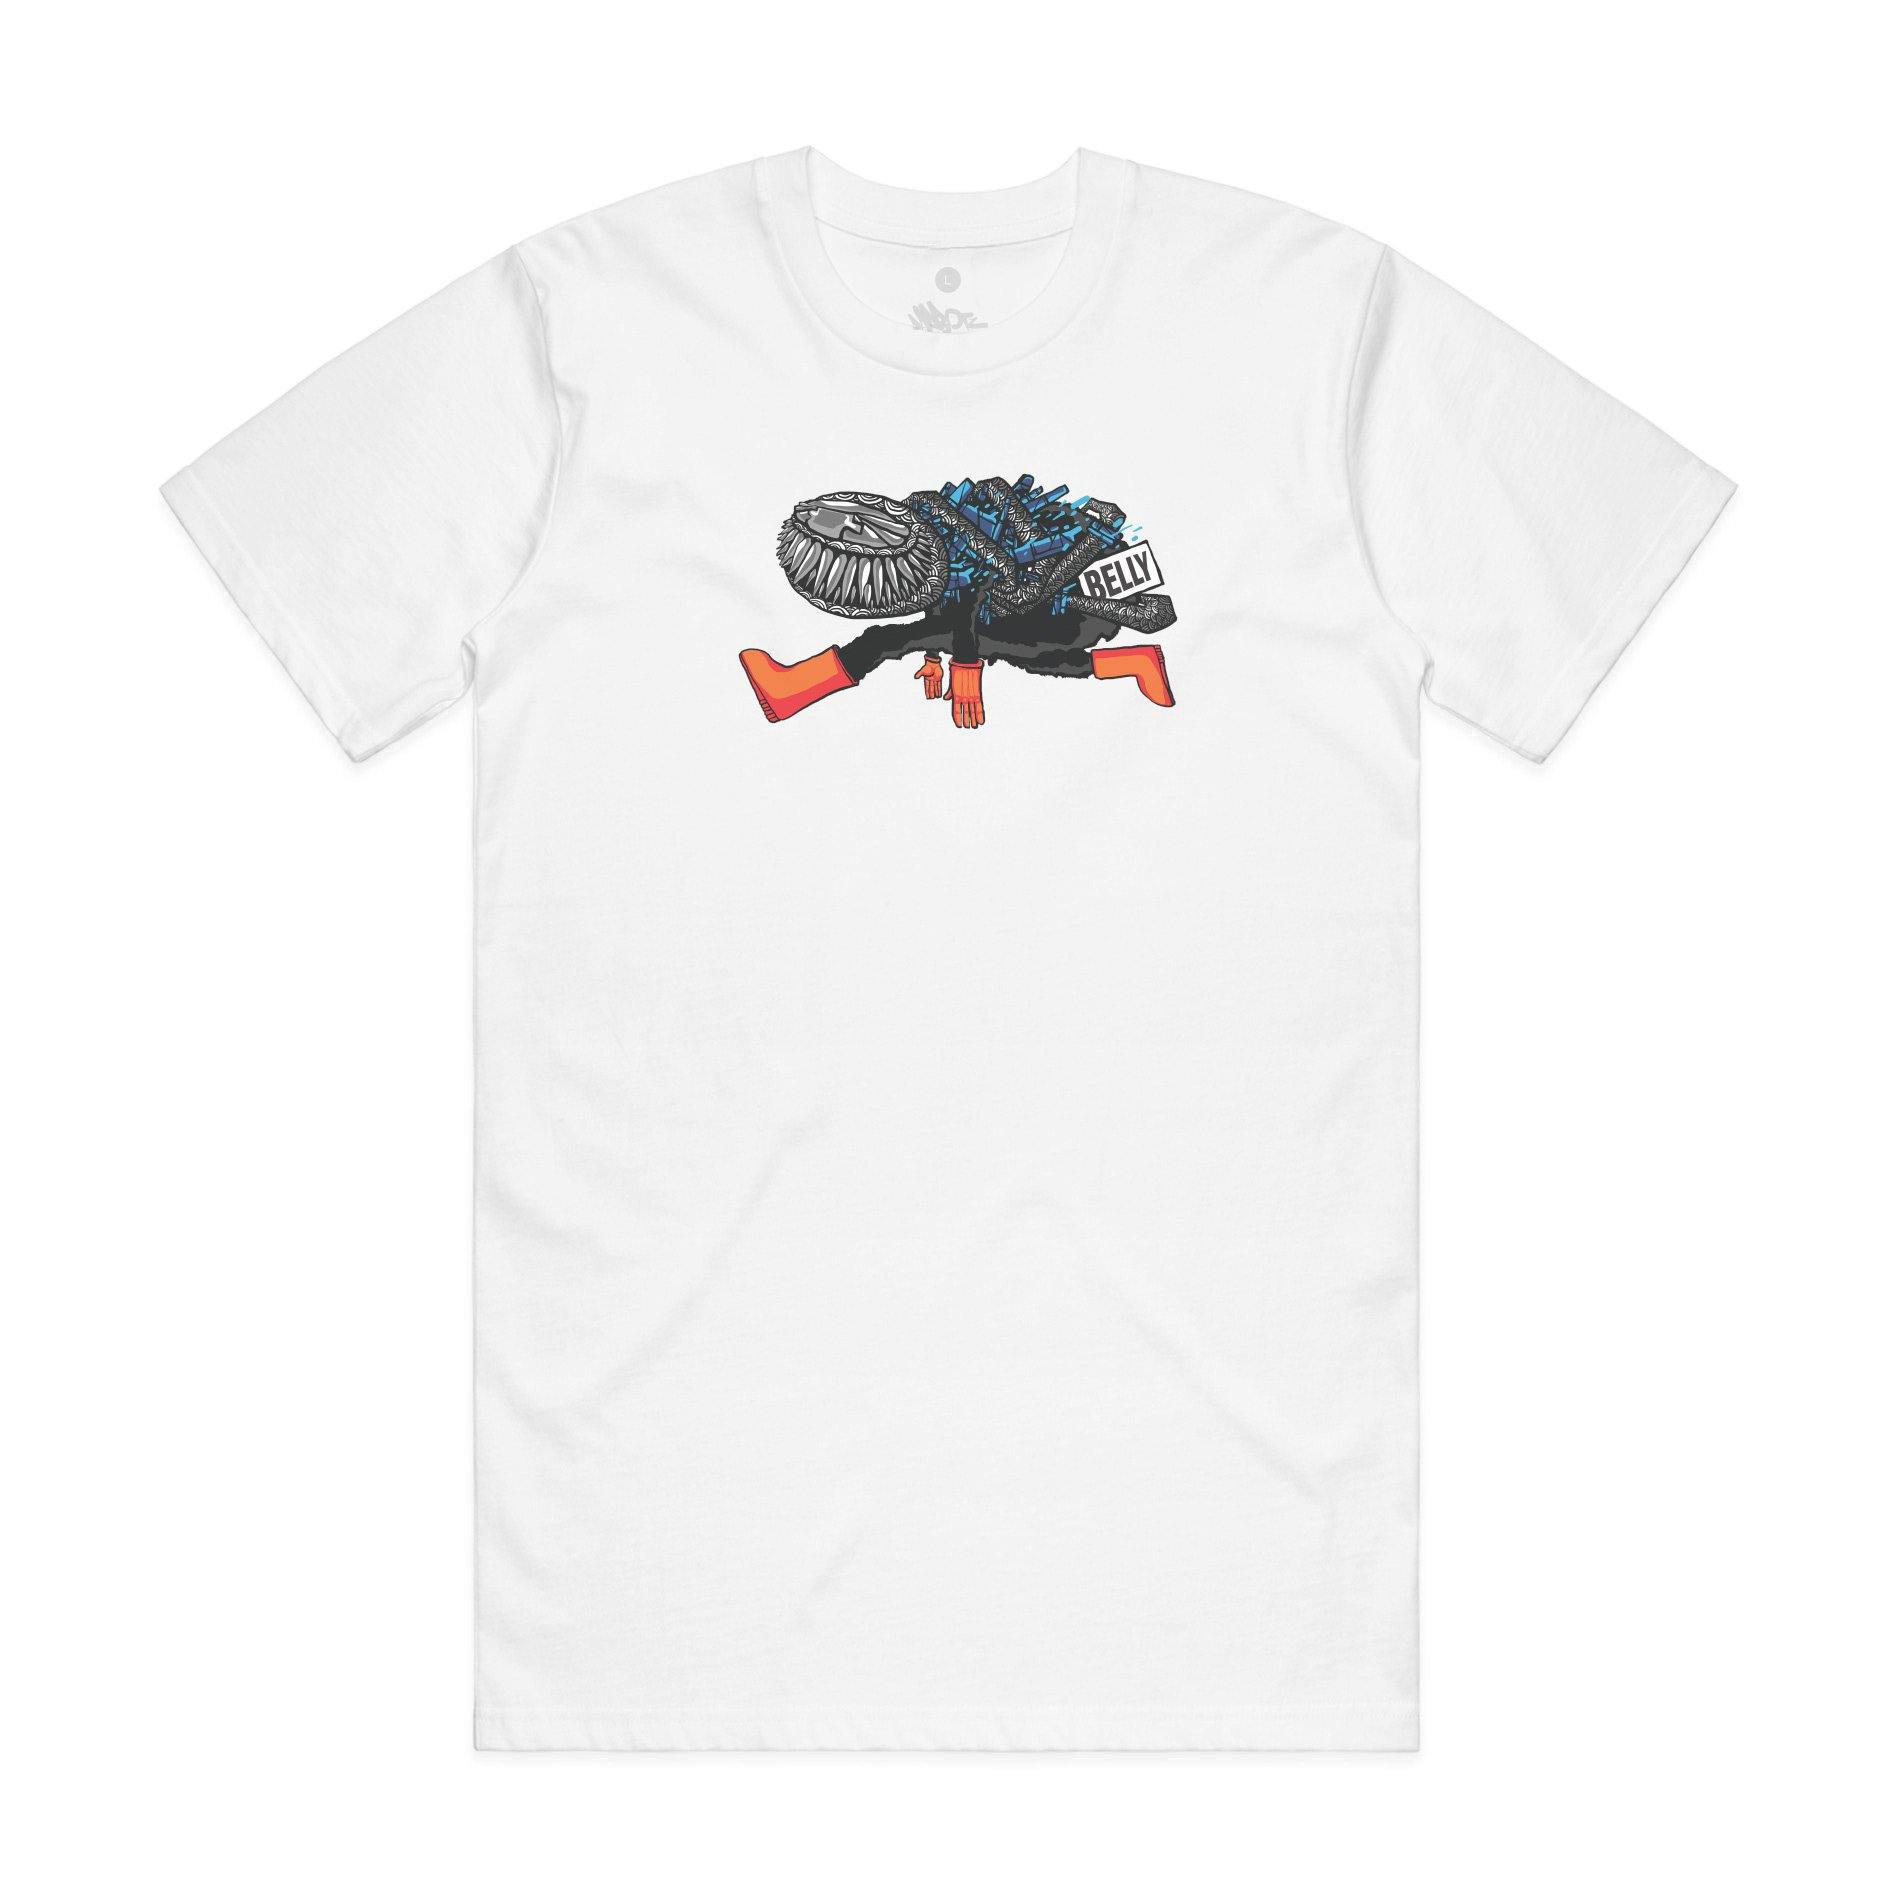 Darbotz x Belly T-Shirt